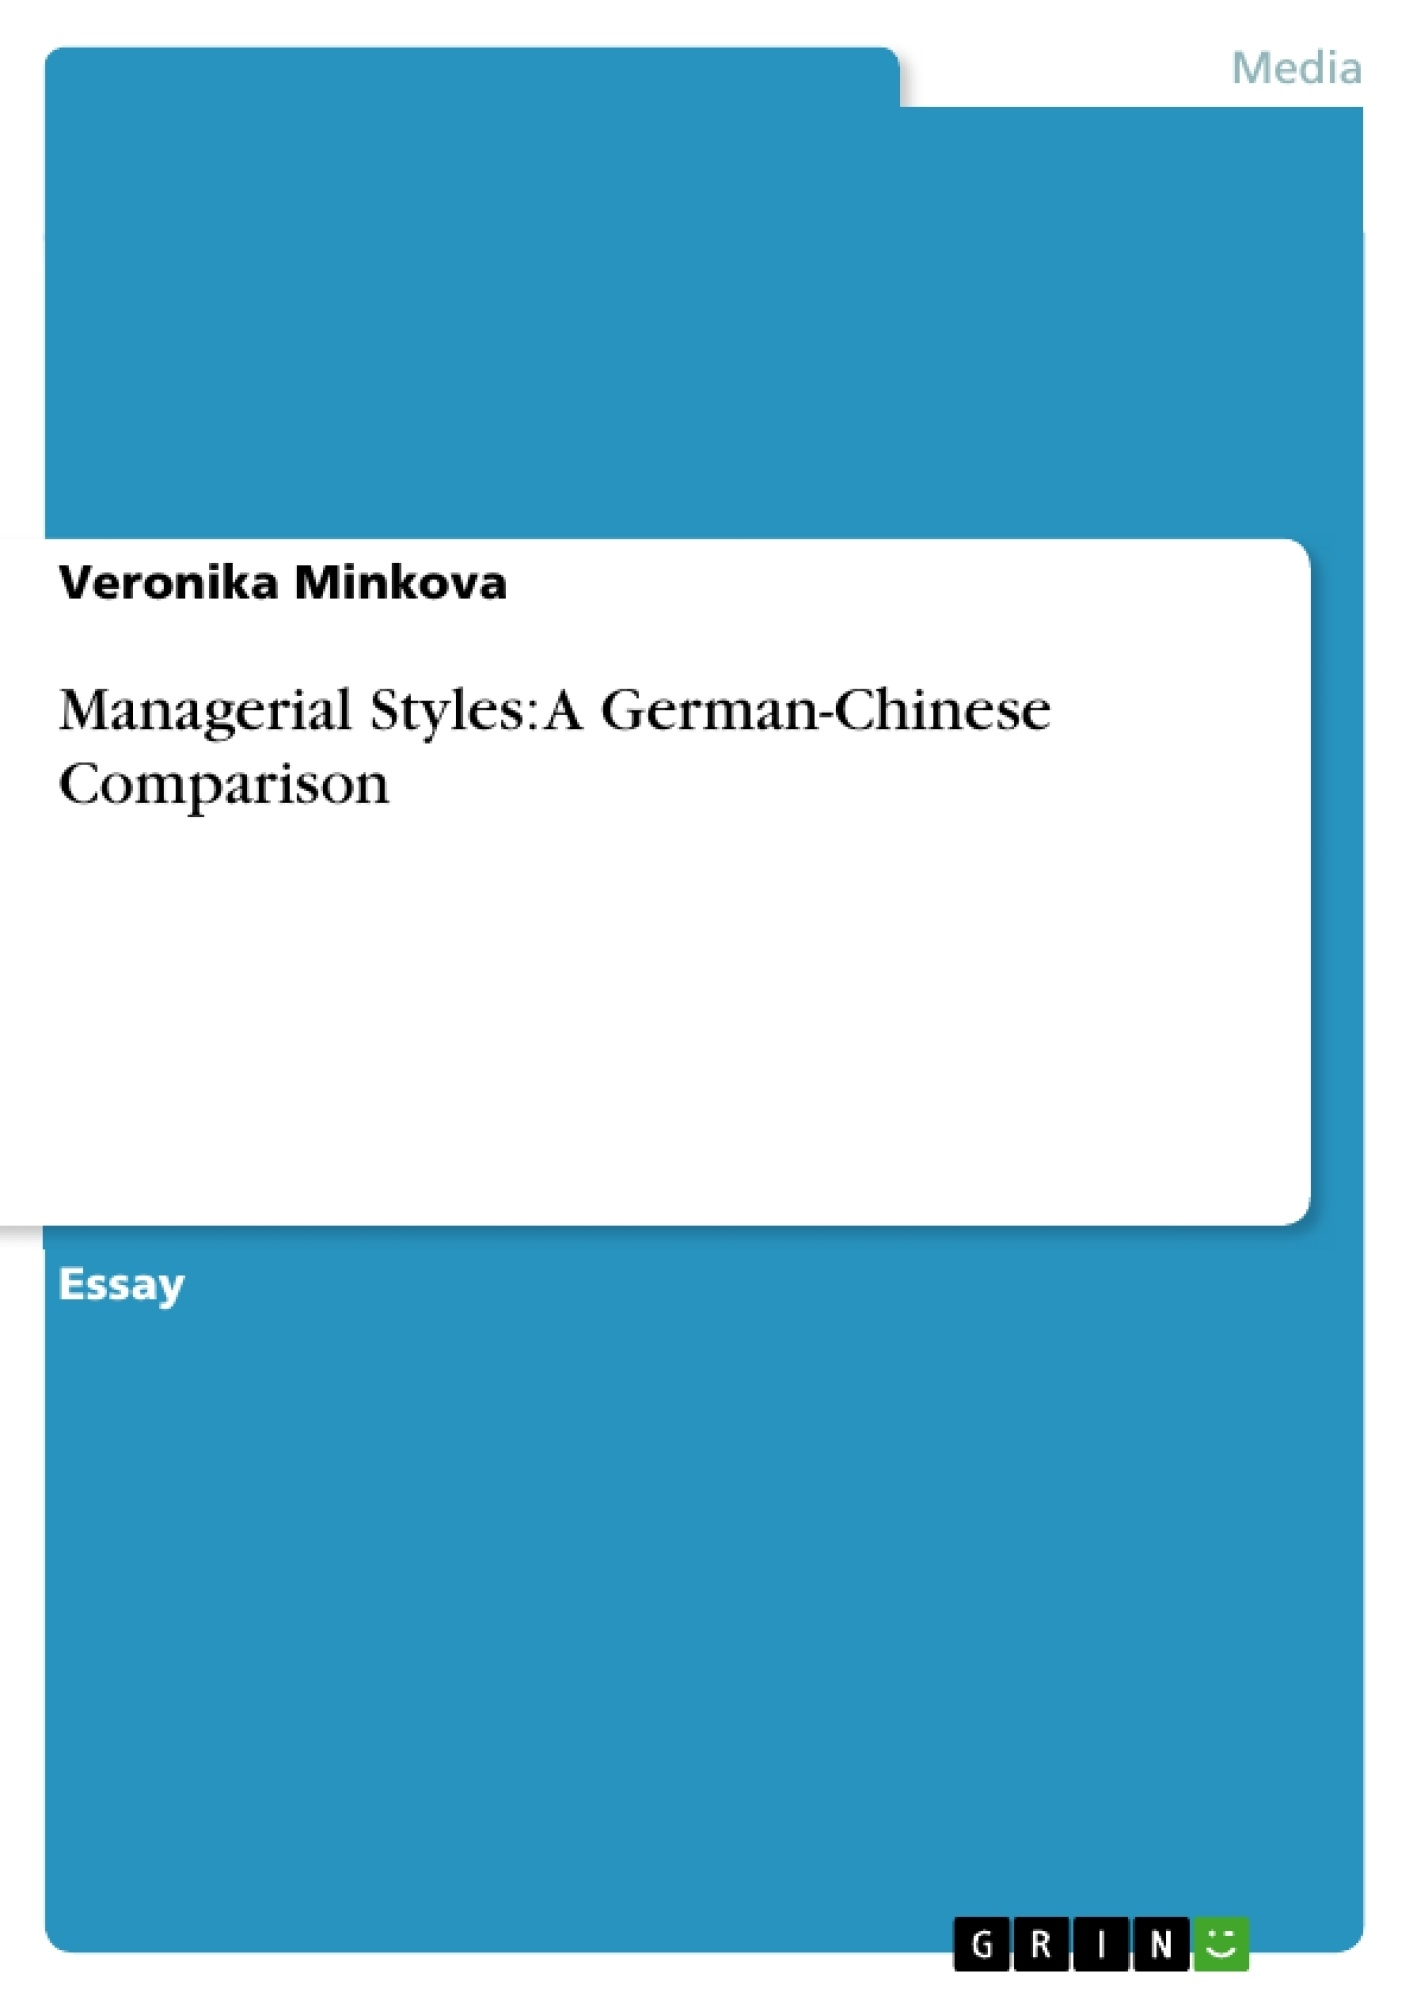 Title: Managerial Styles: A German-Chinese Comparison